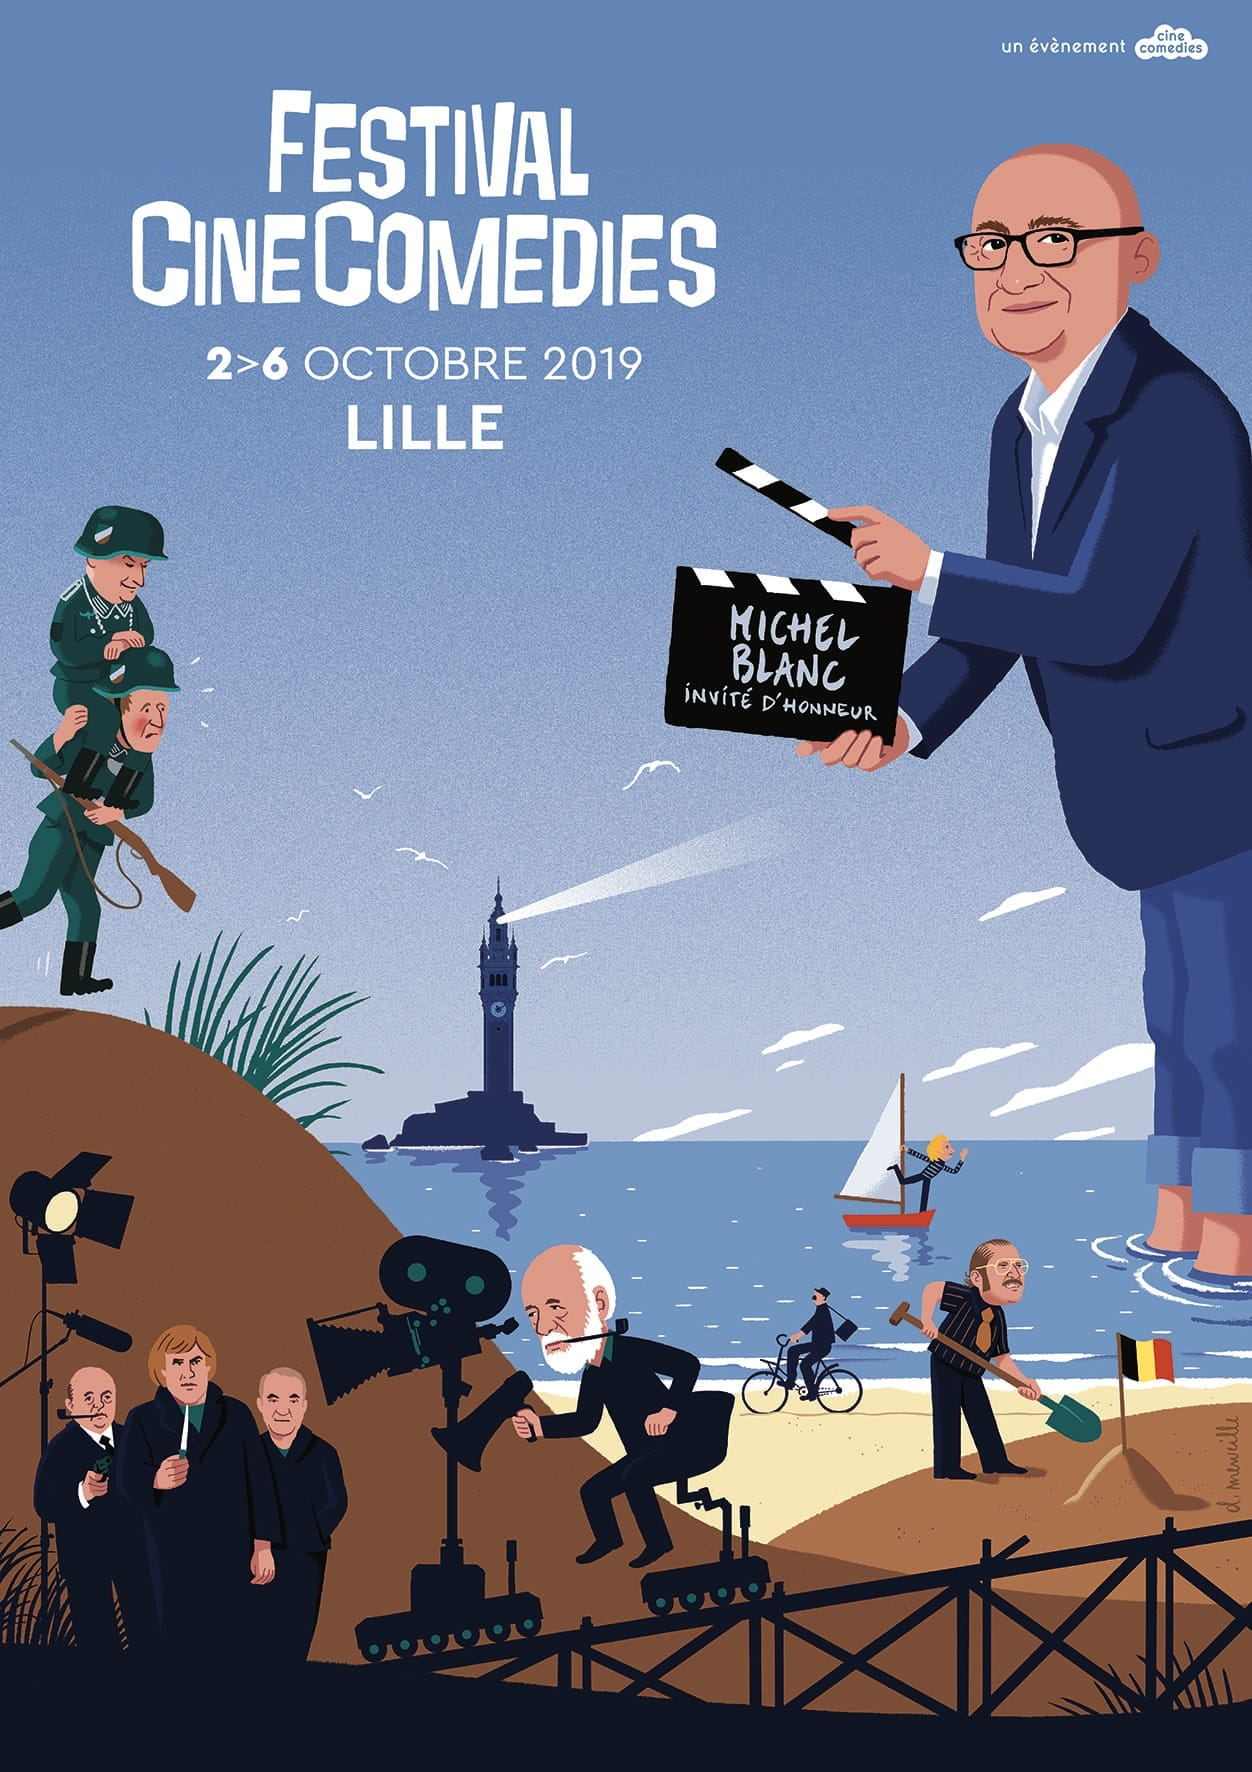 CINECOMEDIES 2019 CLIFF AND CO